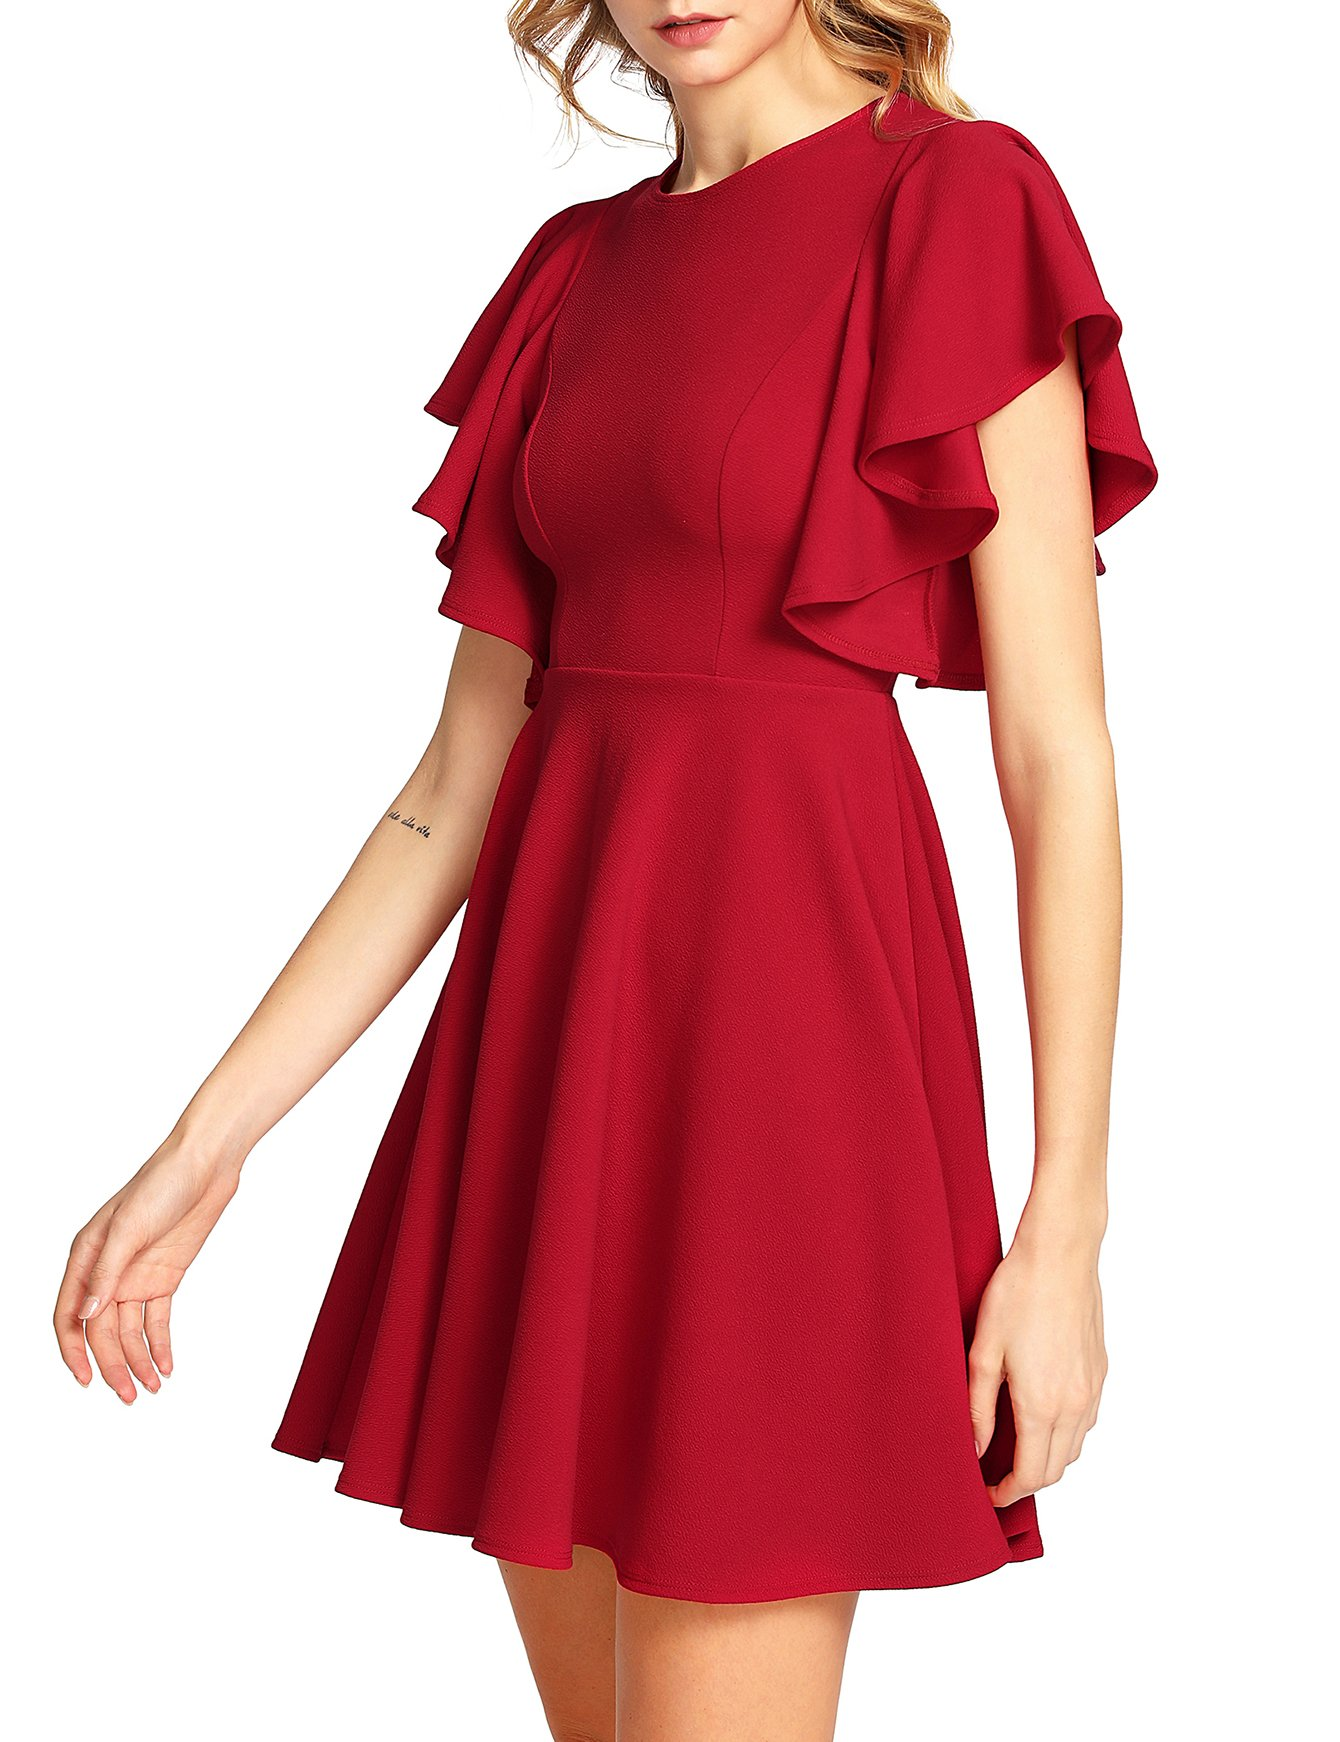 Red Dress - Club Dress For Women Sexy Ruched Bodycon Asymmetrical V Neck Midi Dresses